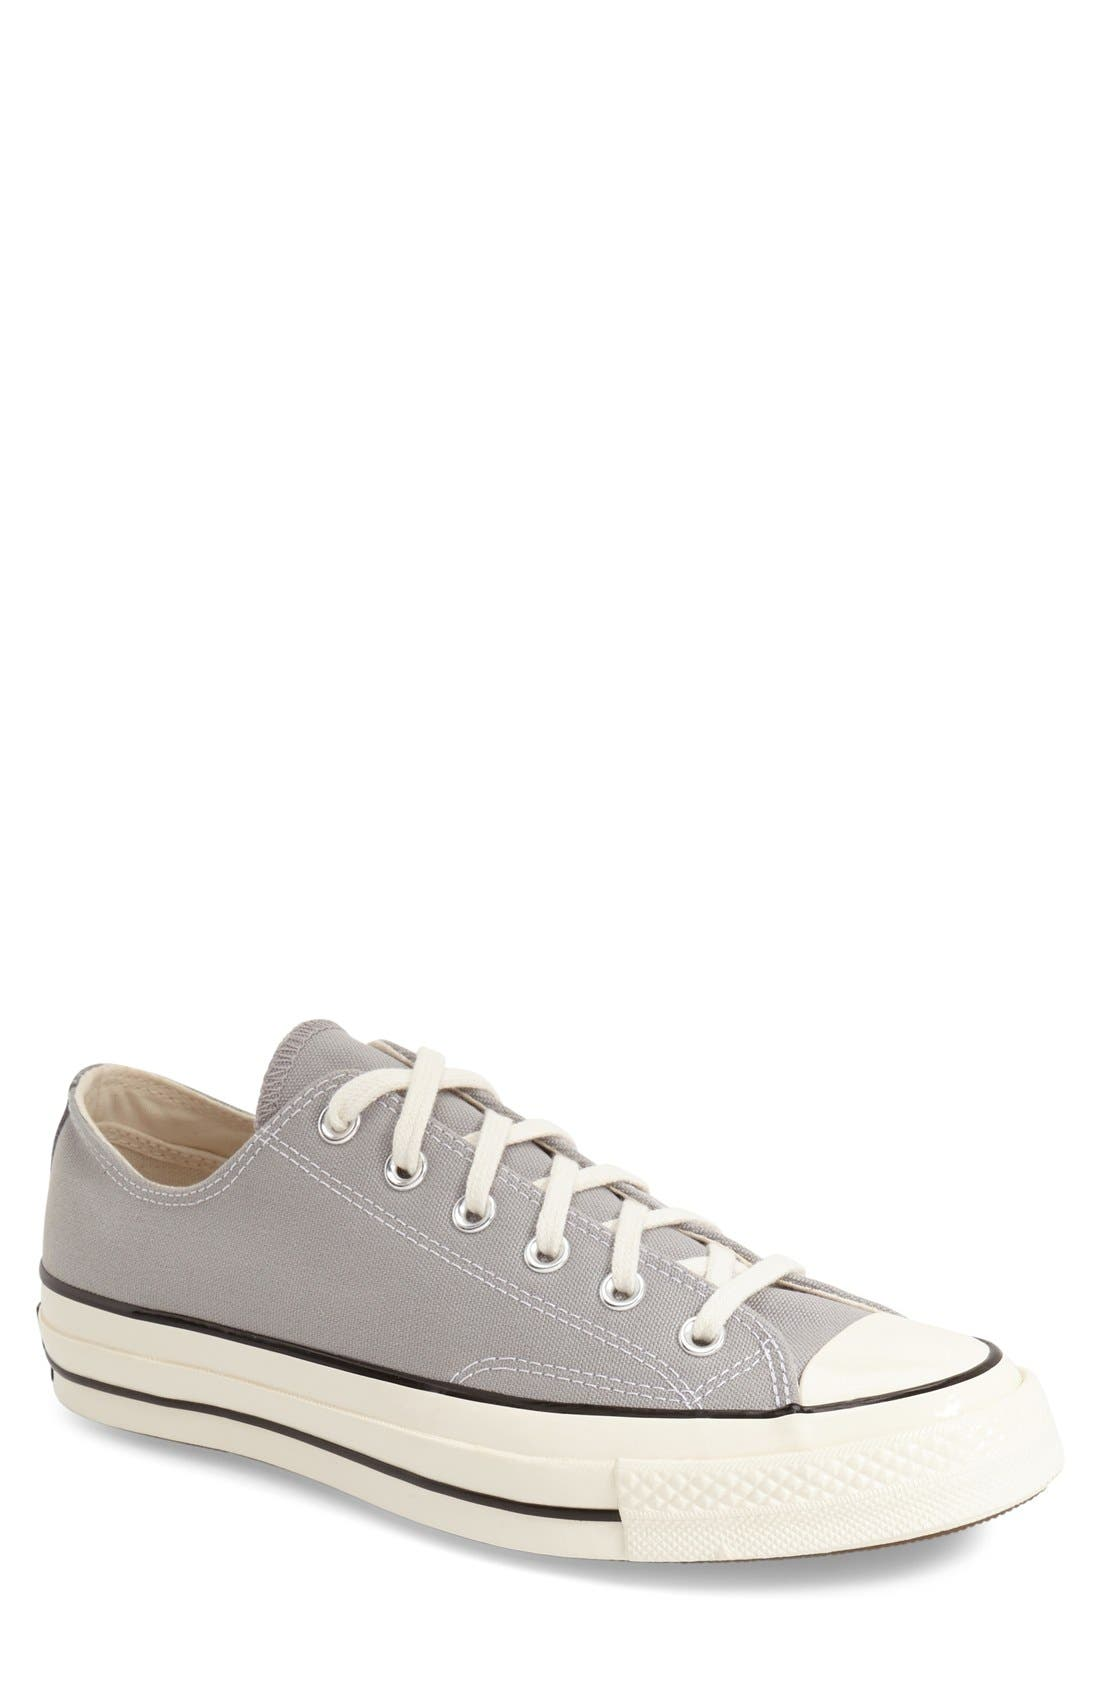 Alternate Image 1 Selected - Converse Chuck Taylor® All Star® '70 Low Sneaker (Men)